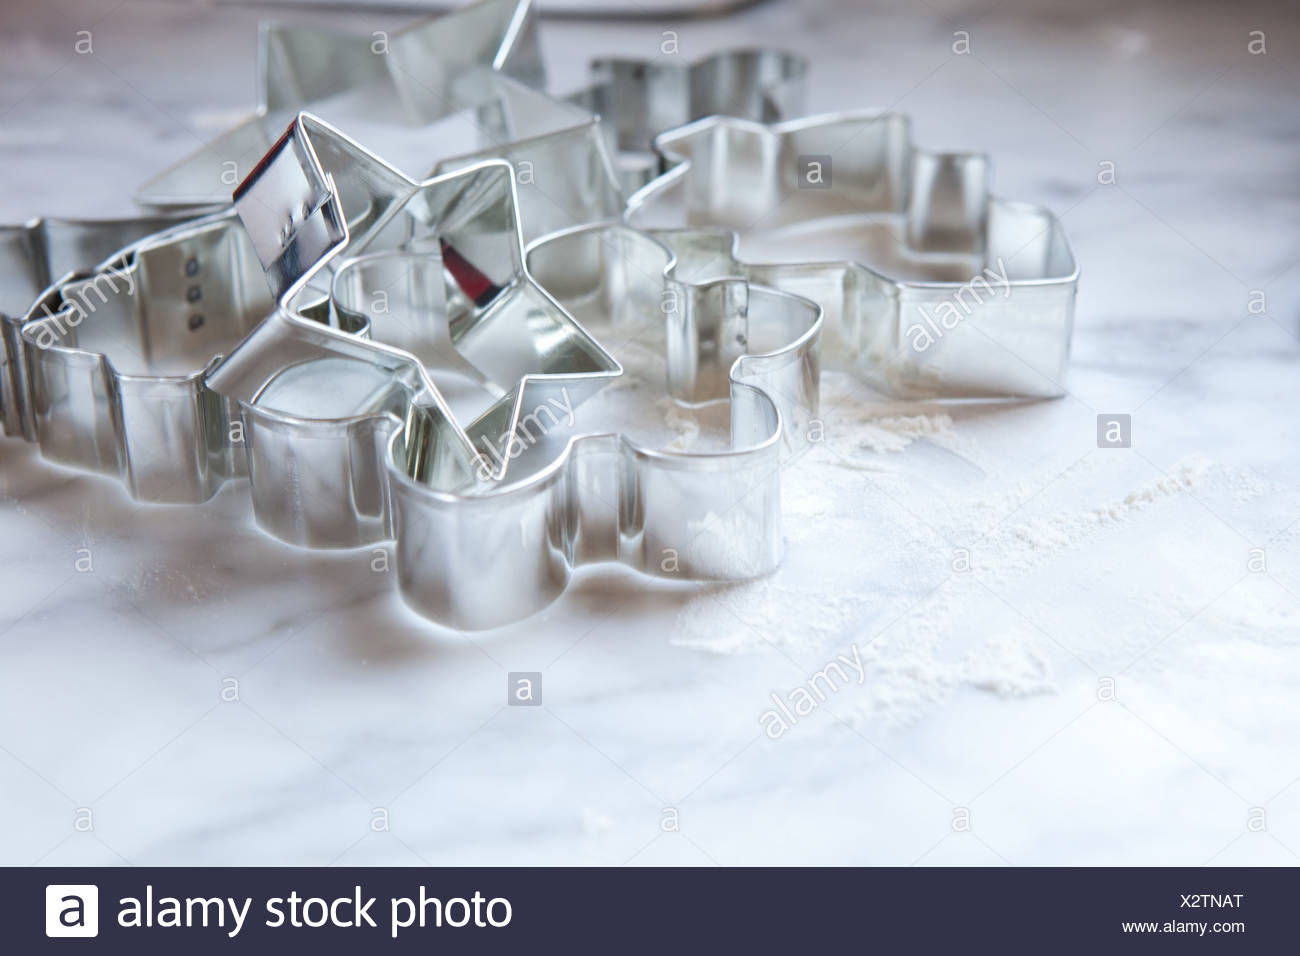 Christmas cookie cutters - Stock Image